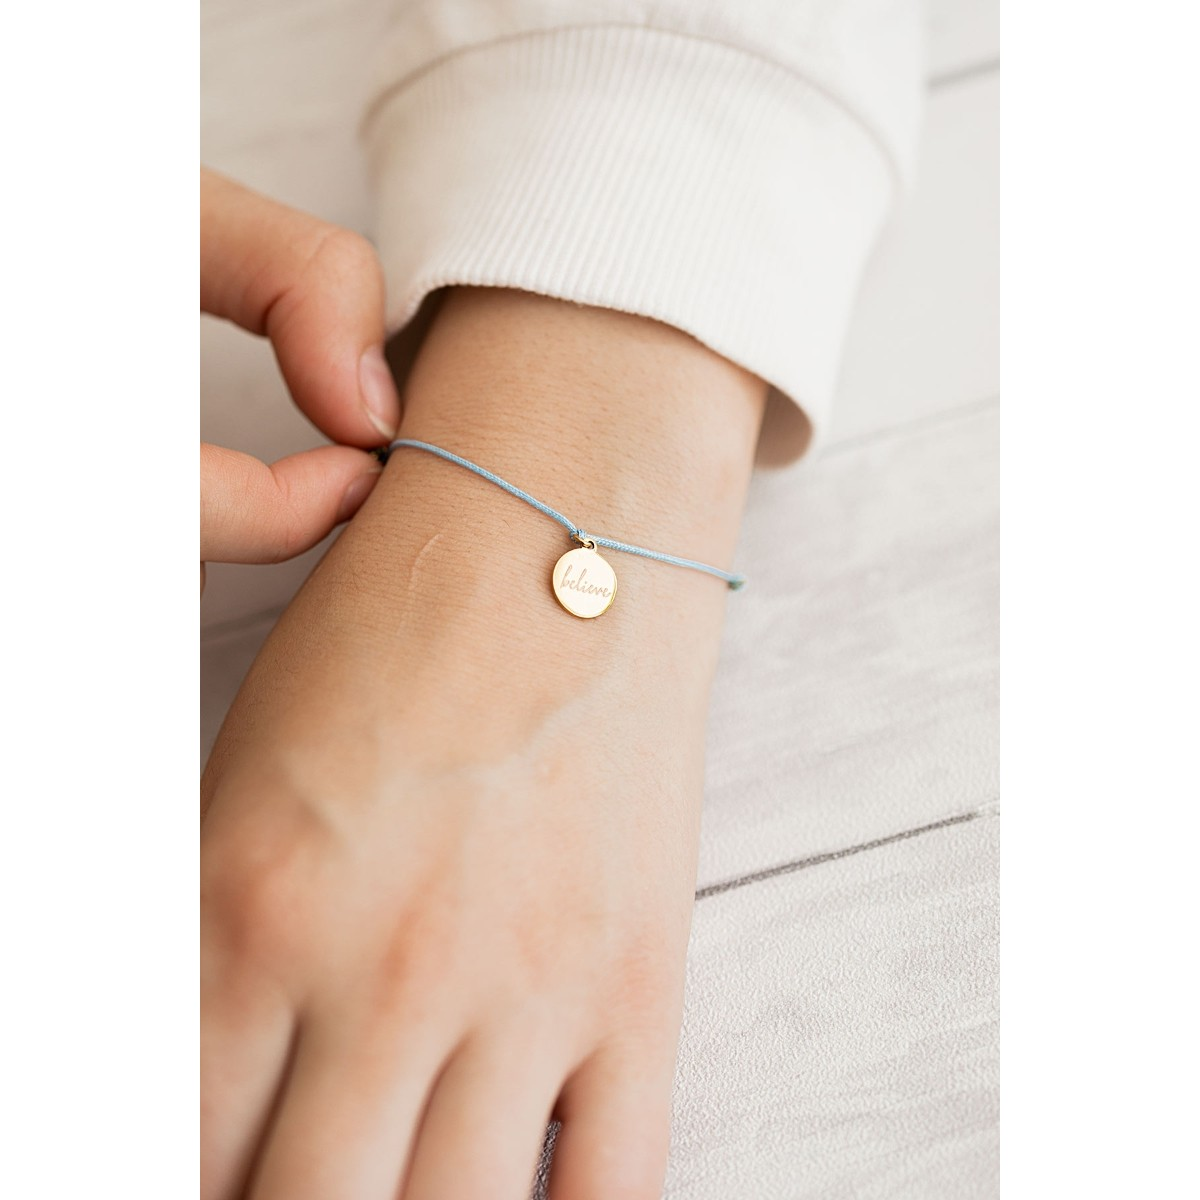 Oh Bracelet Berlin - Armband »Believe« Farbe Roségold